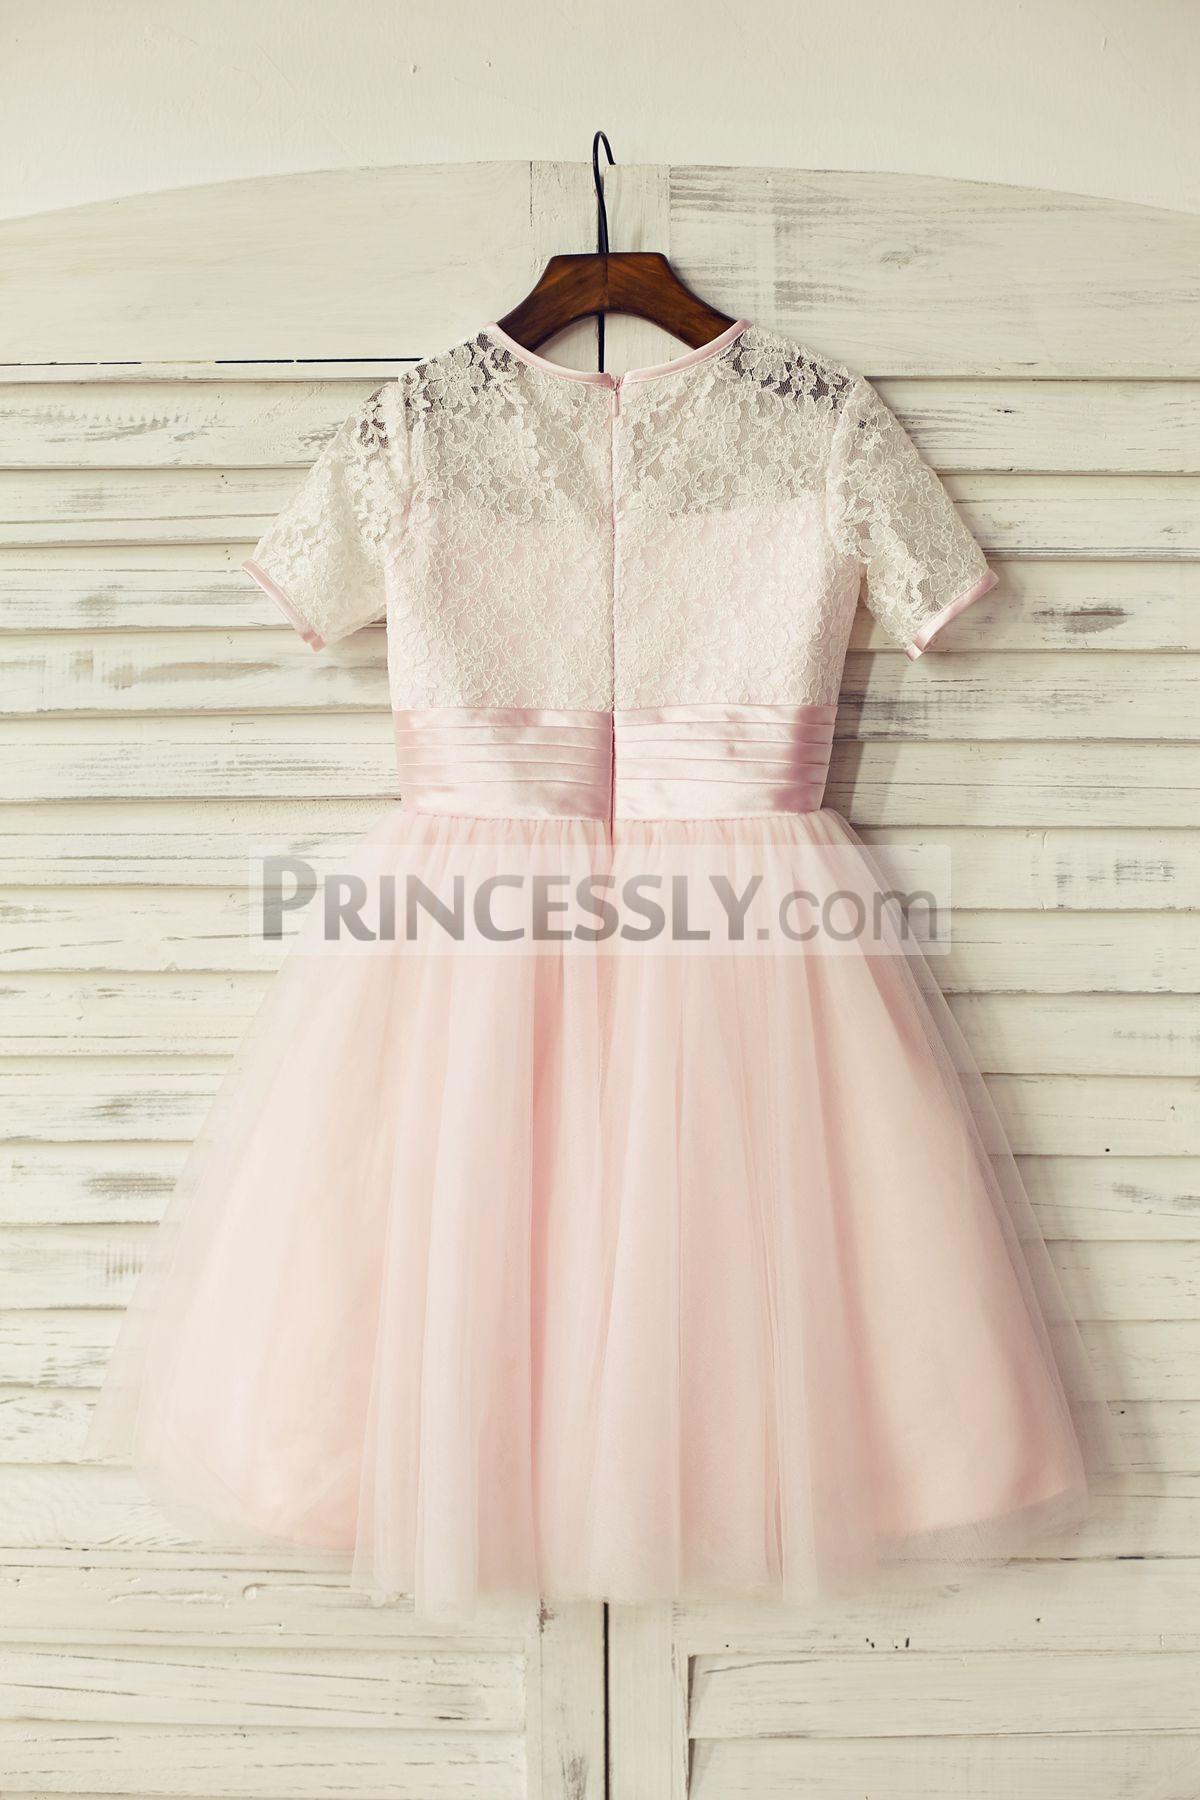 Lace tulle pink wedding baby girl dress